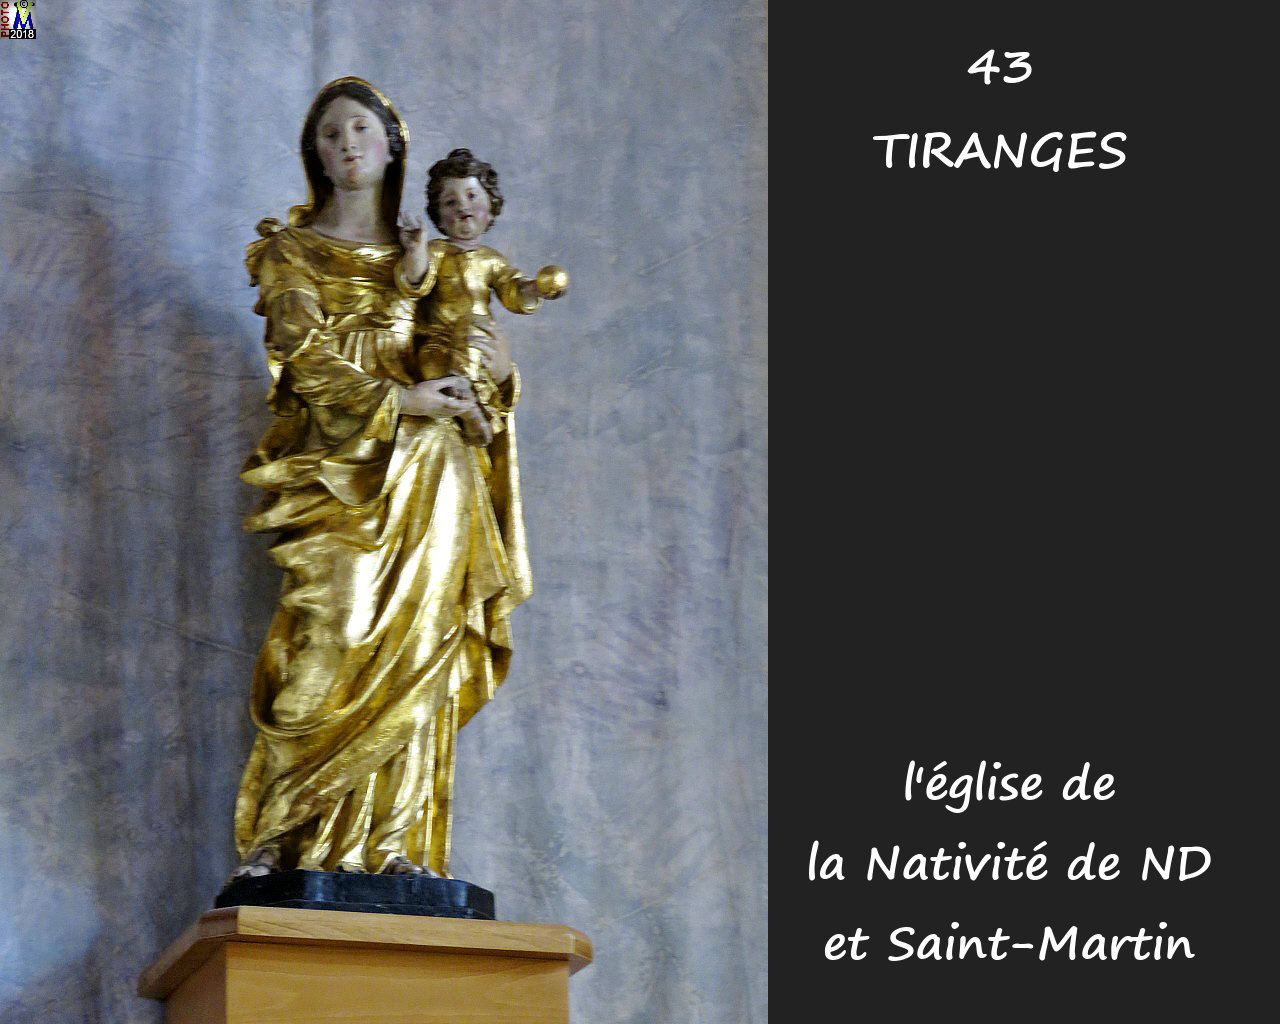 43TIRANGES_eglise_252.jpg